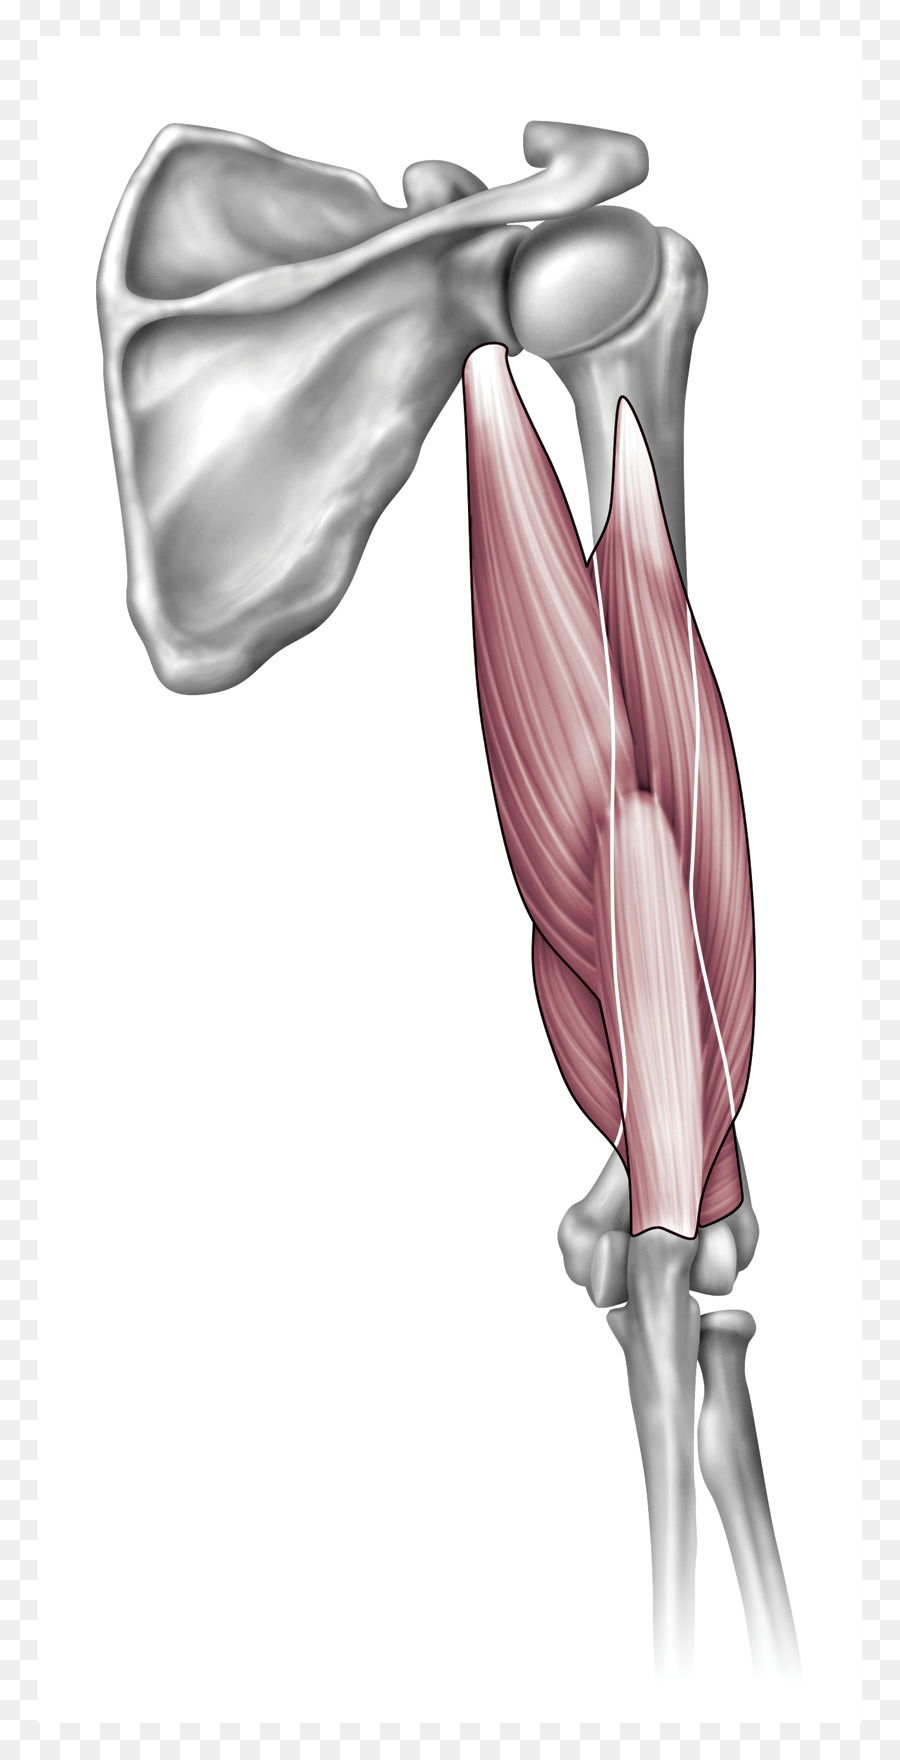 Shoulder Anatomy Arm Elbow Joint - arm png download - 825*1760 ...